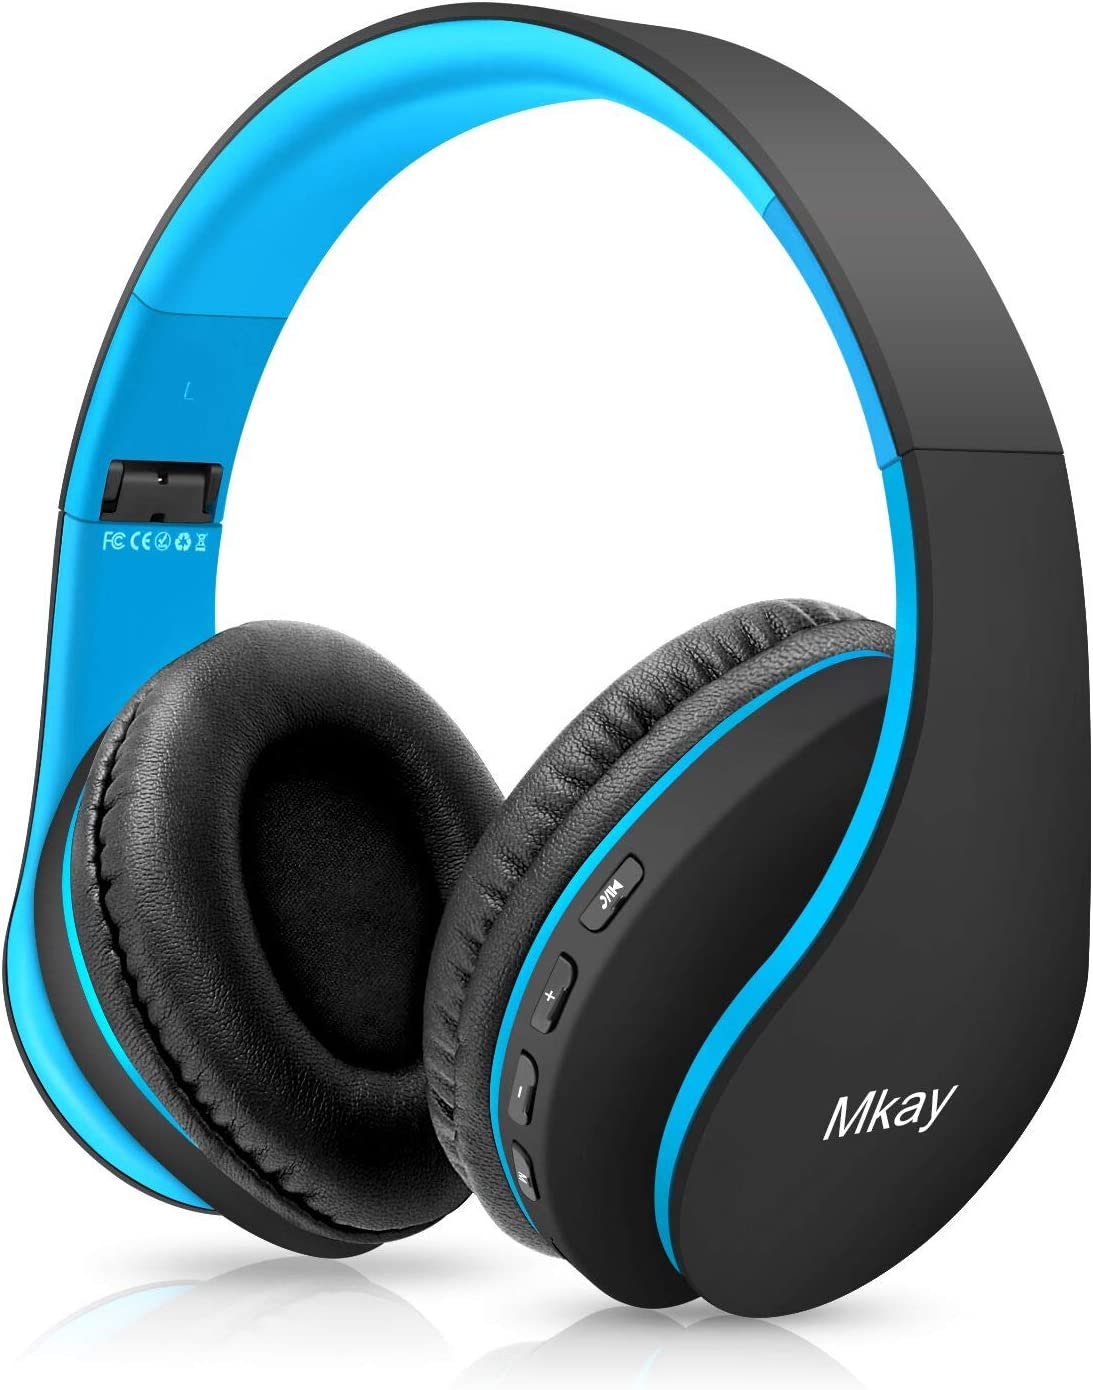 Best Bluetooth Headphones for Conference Calls MKay Over Ear Headset V5.0 with Microphone